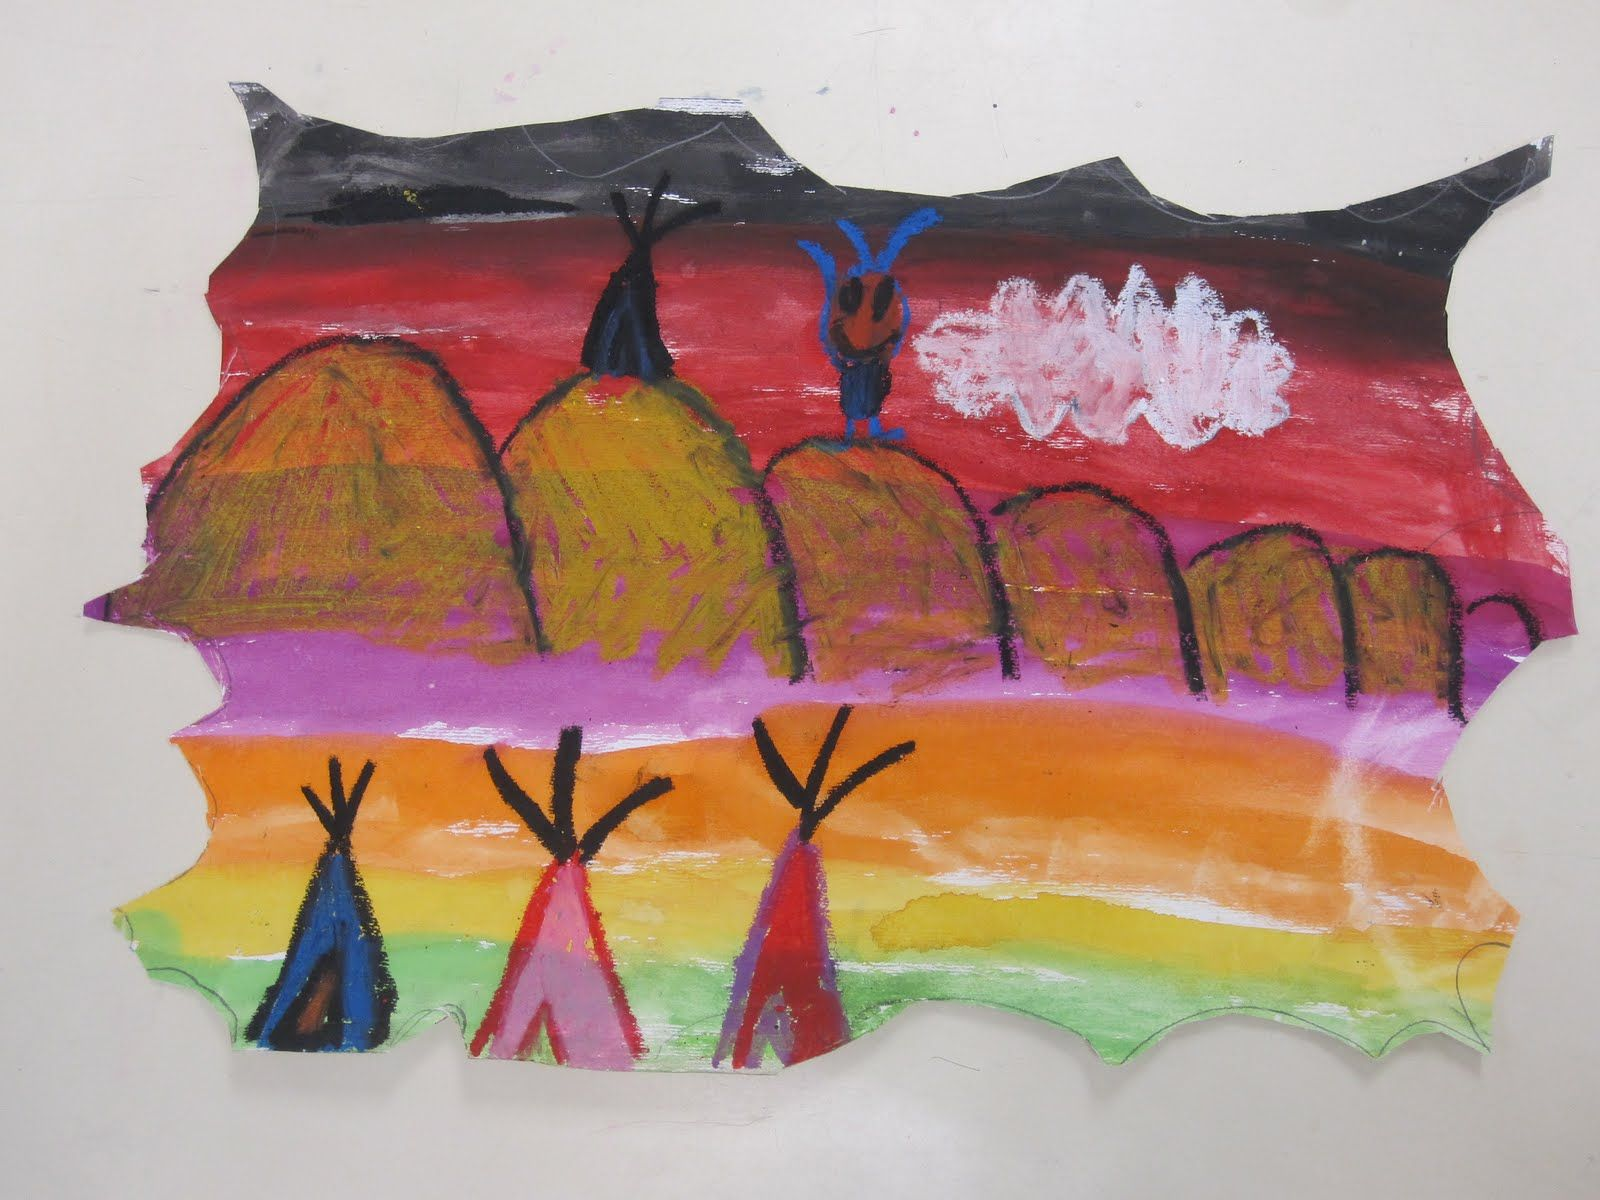 Legend of the Indian Paint Brush- book by Tomie DePaola. 1st grade. Brainstormed images from the story. Painted in a rainbow pattern of stripes. Scalloped the edges to look like animal skins. Oil pastel to draw Native American scenes.